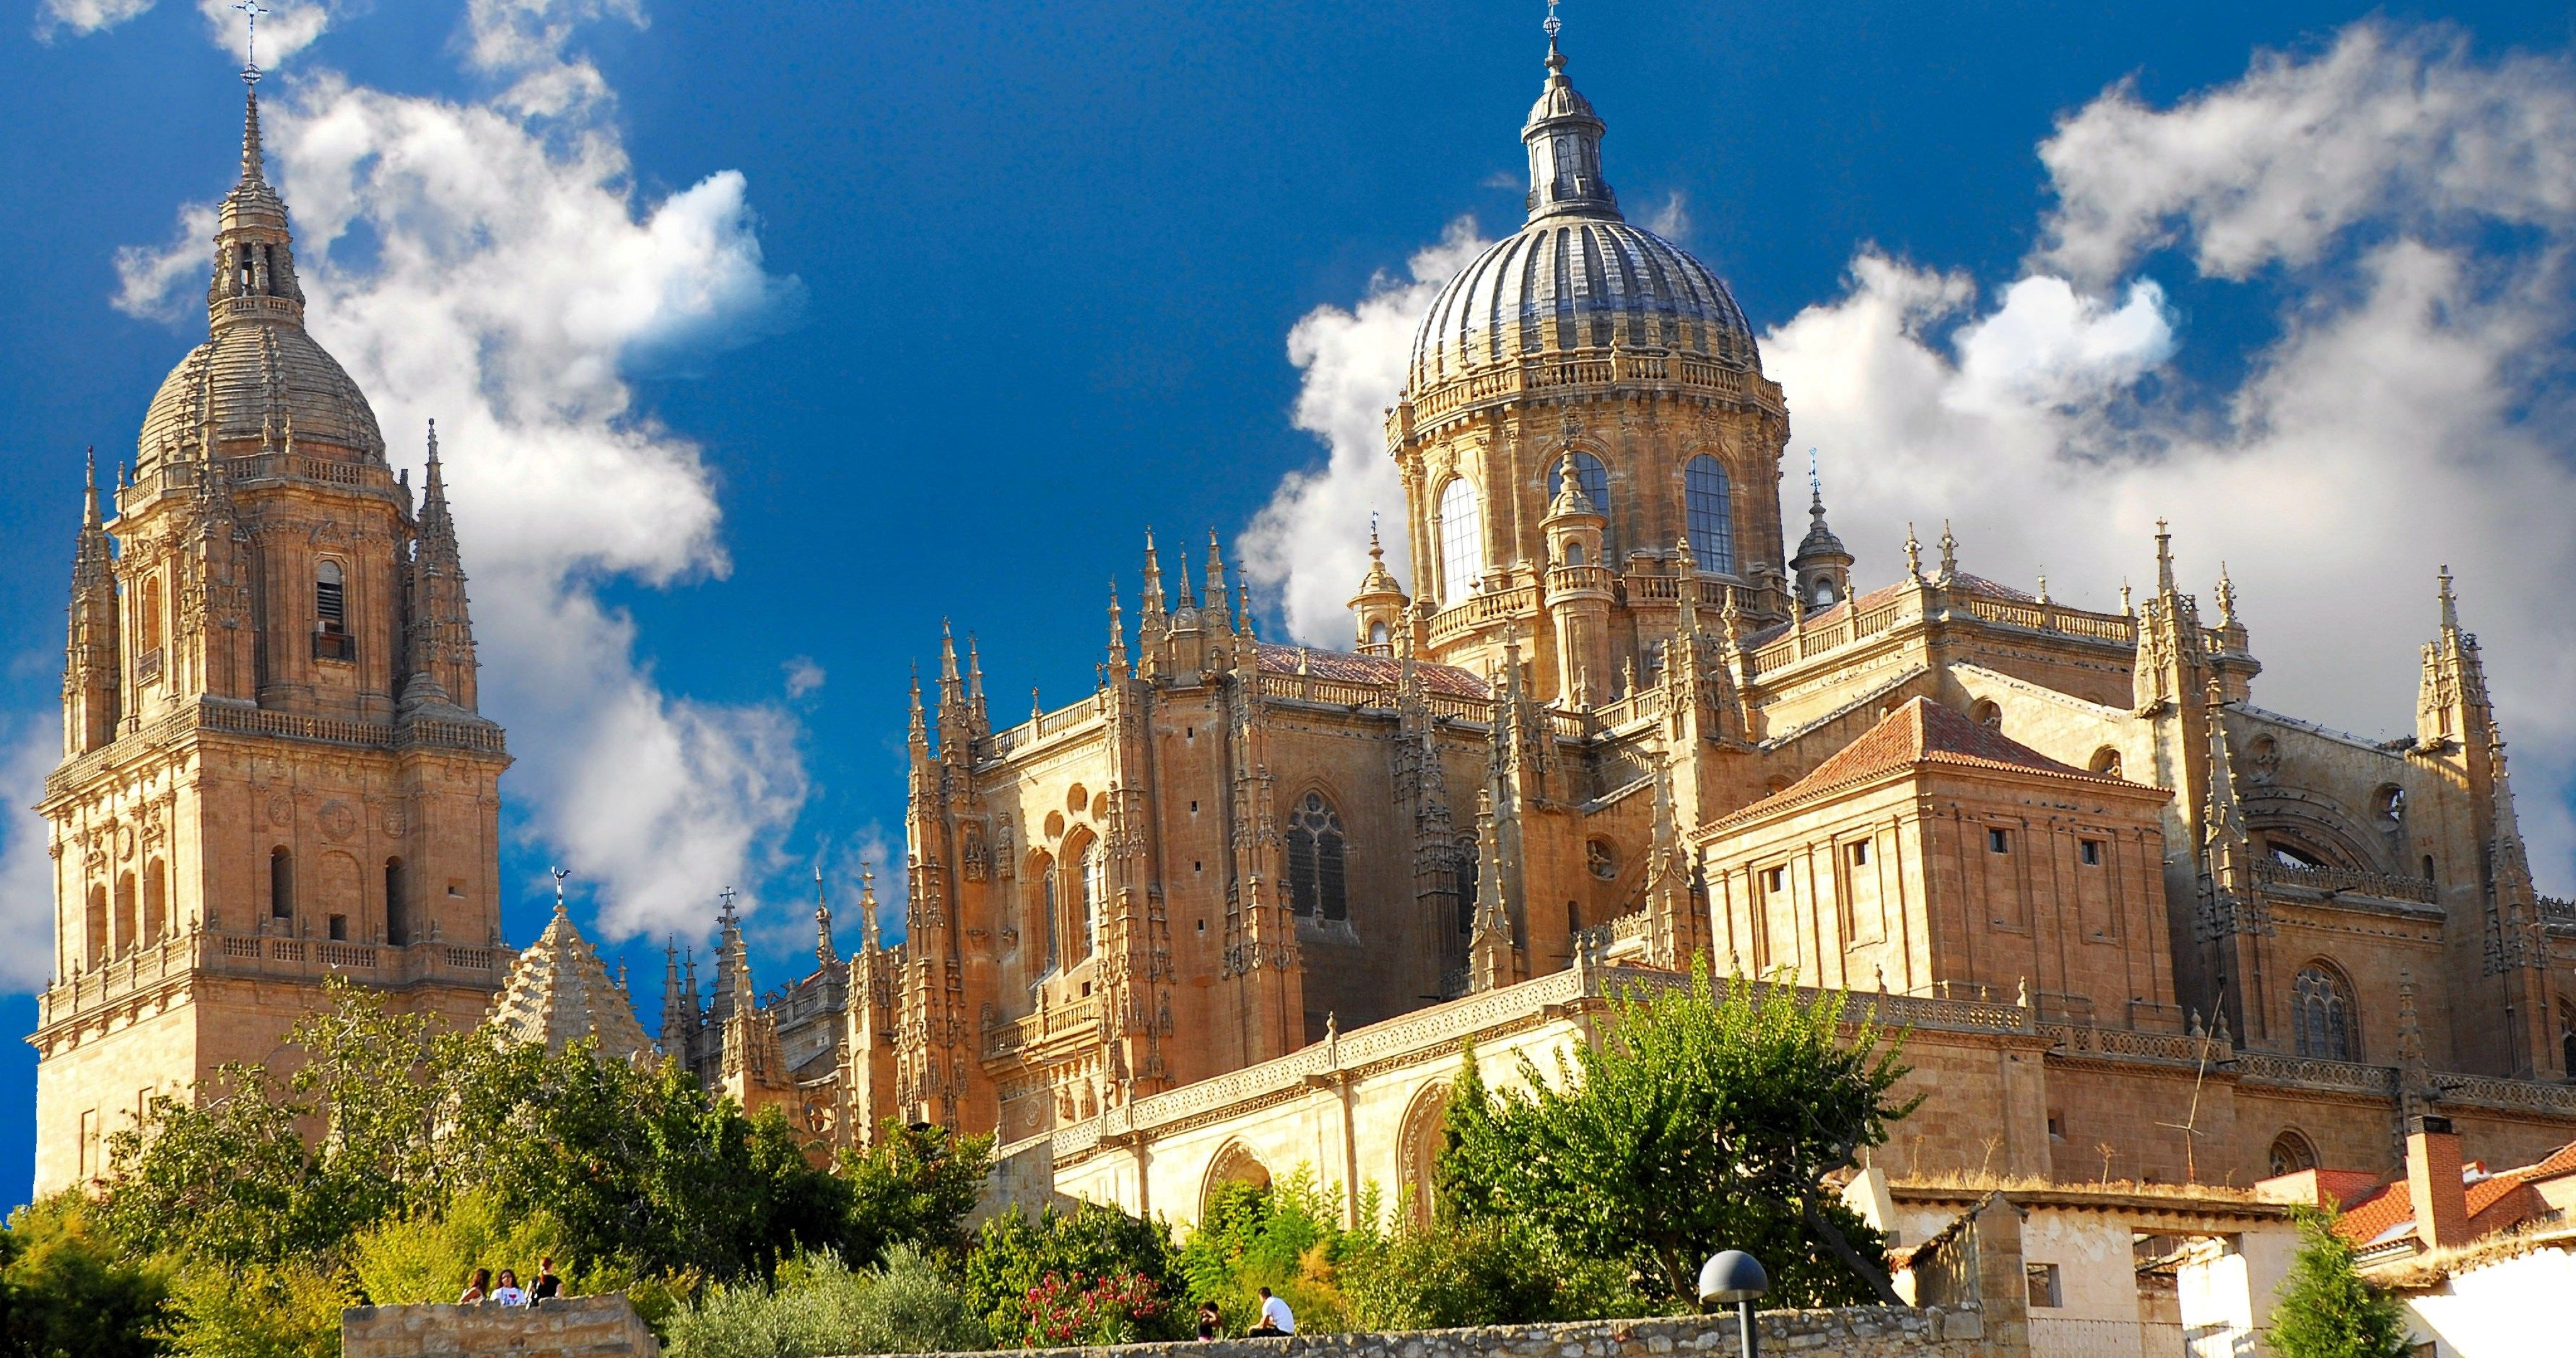 Spain Salamanca 4k Ultra Hd Wallpaper Cool Places To Visit